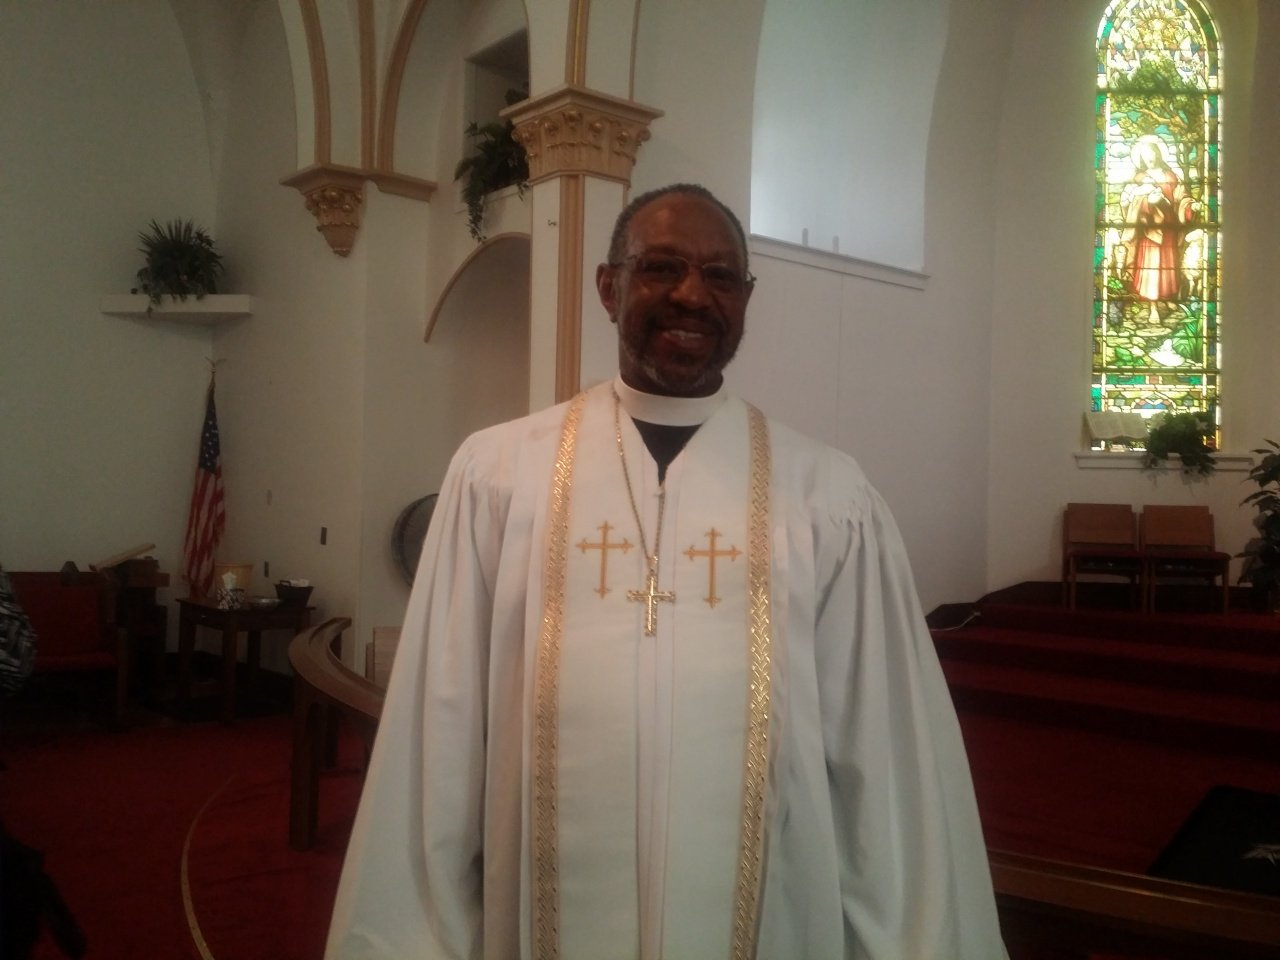 Elder Ronald Bailey